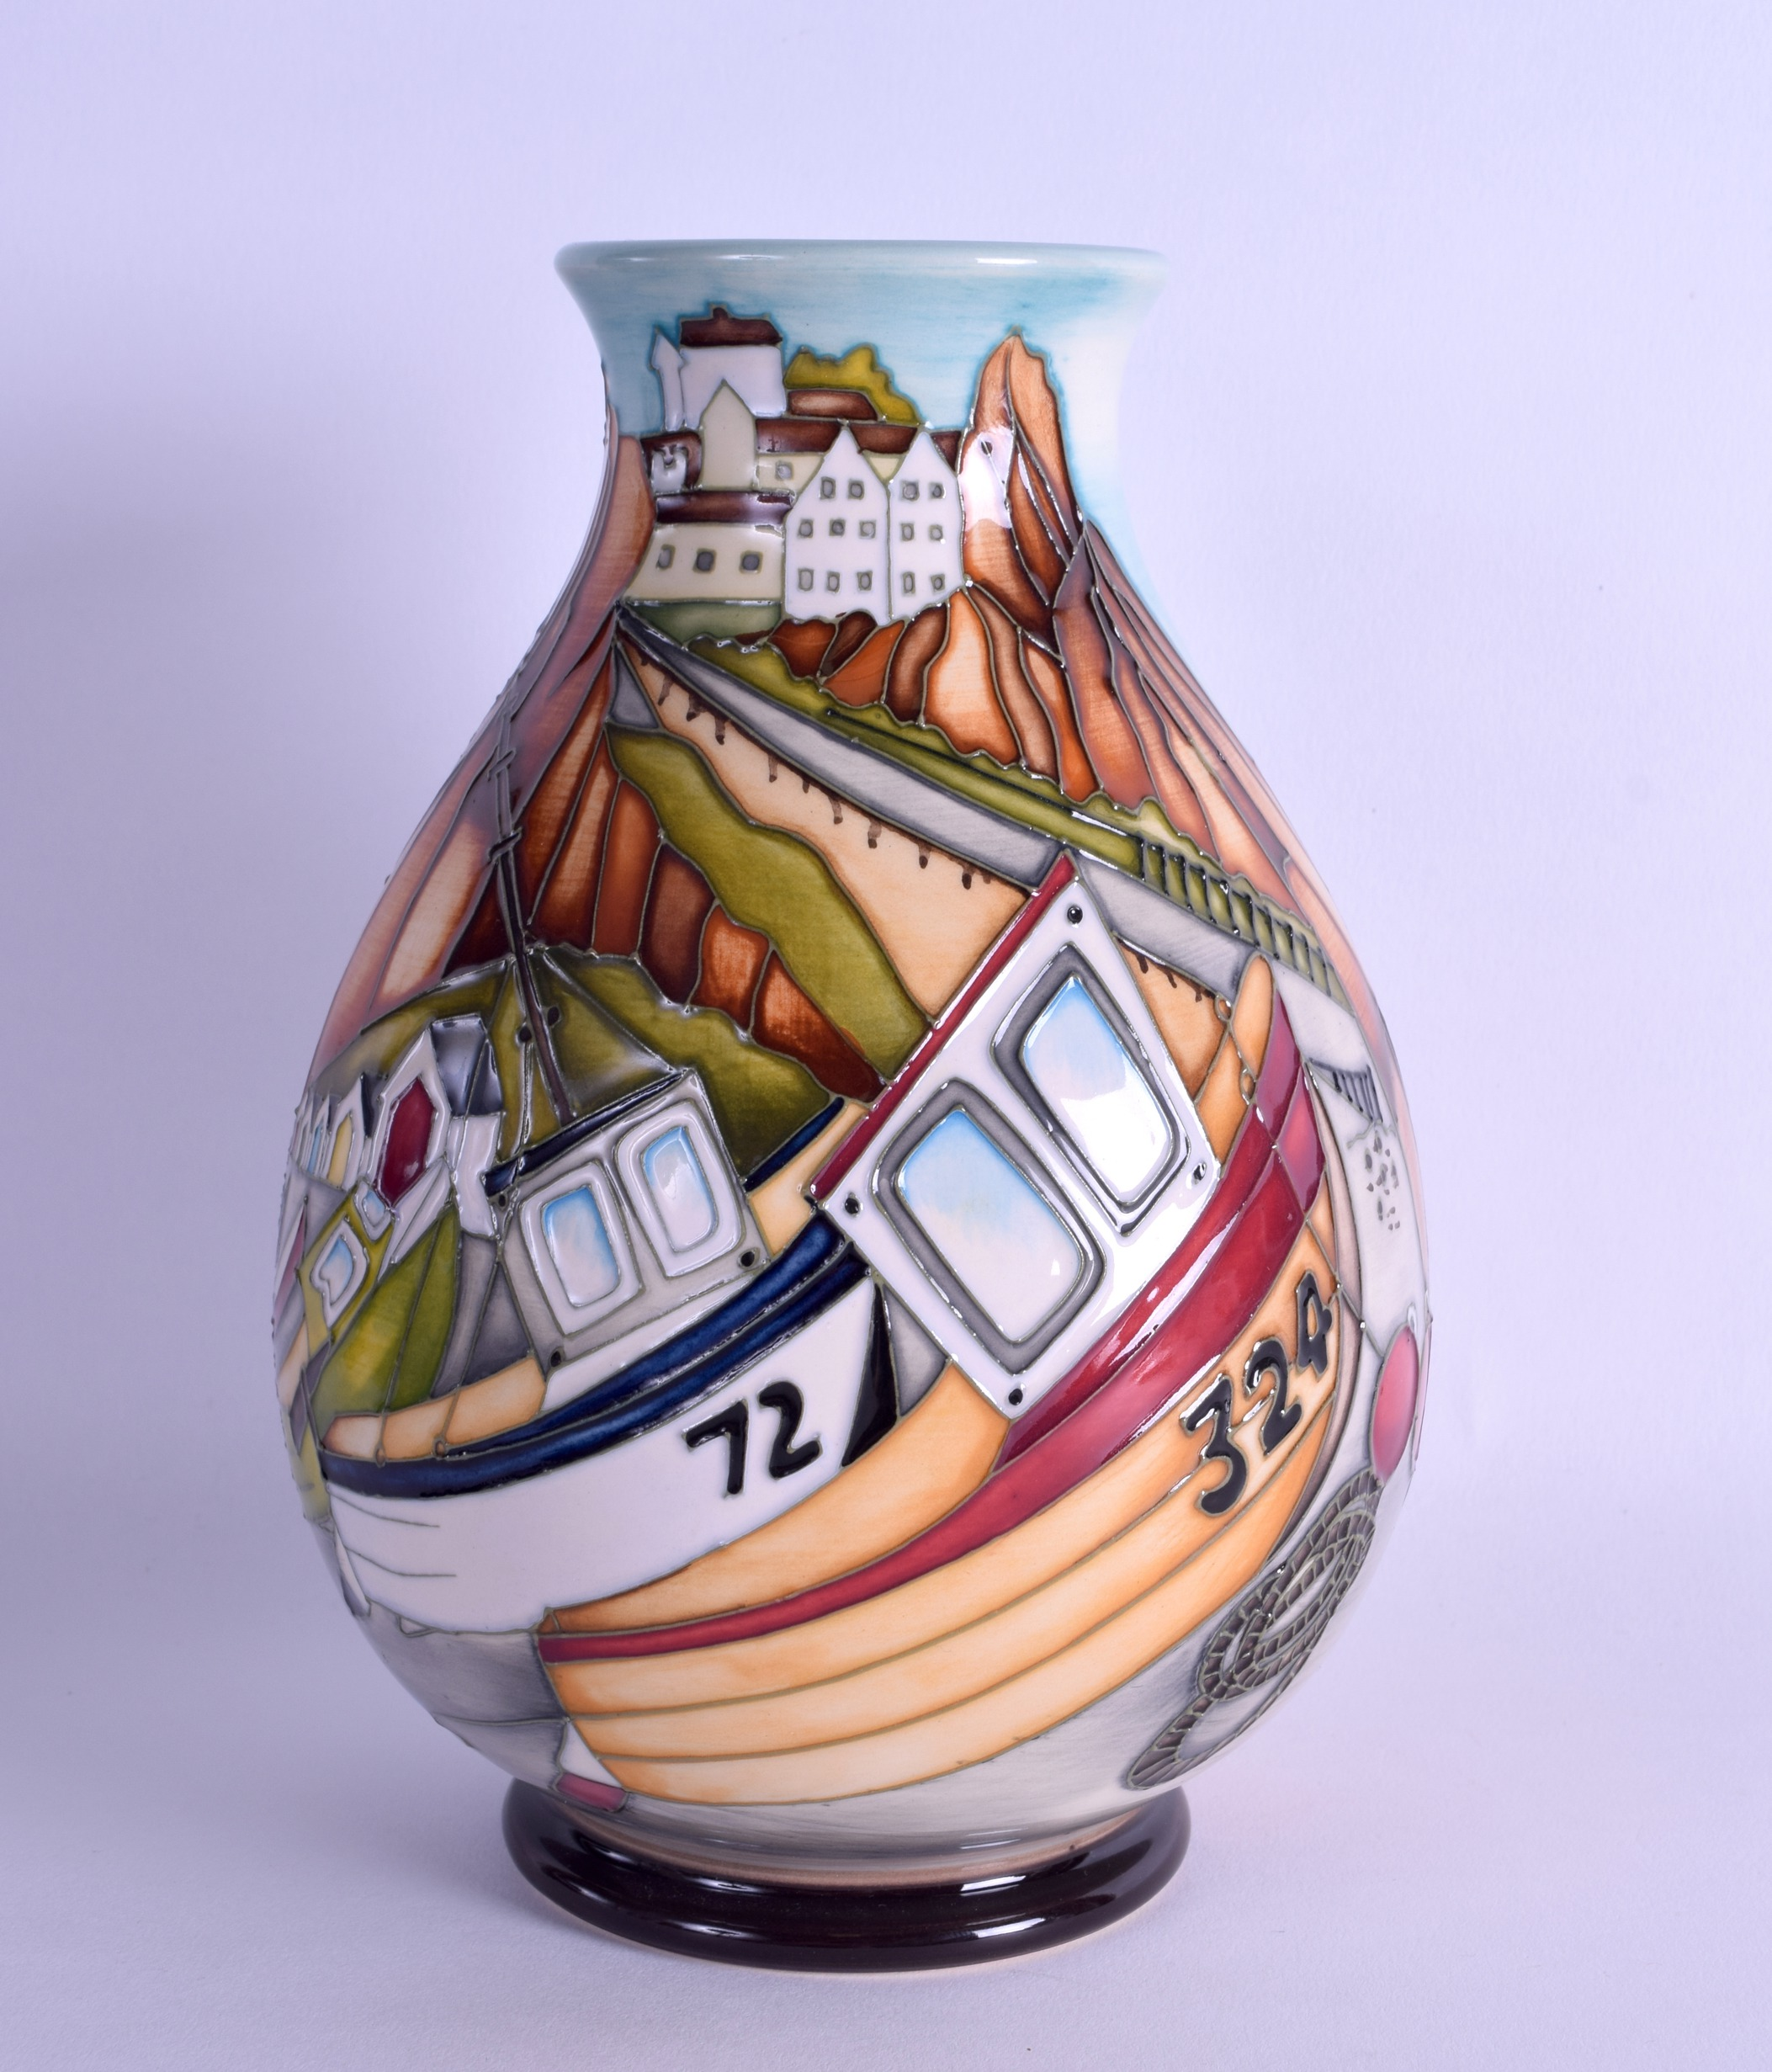 Lot 37 - A MOORCROFT 'MEMORIES OF THE SEASIDE' VASE designed by Kerry Goodwin. No 98 of 200. 18.5 cm high.